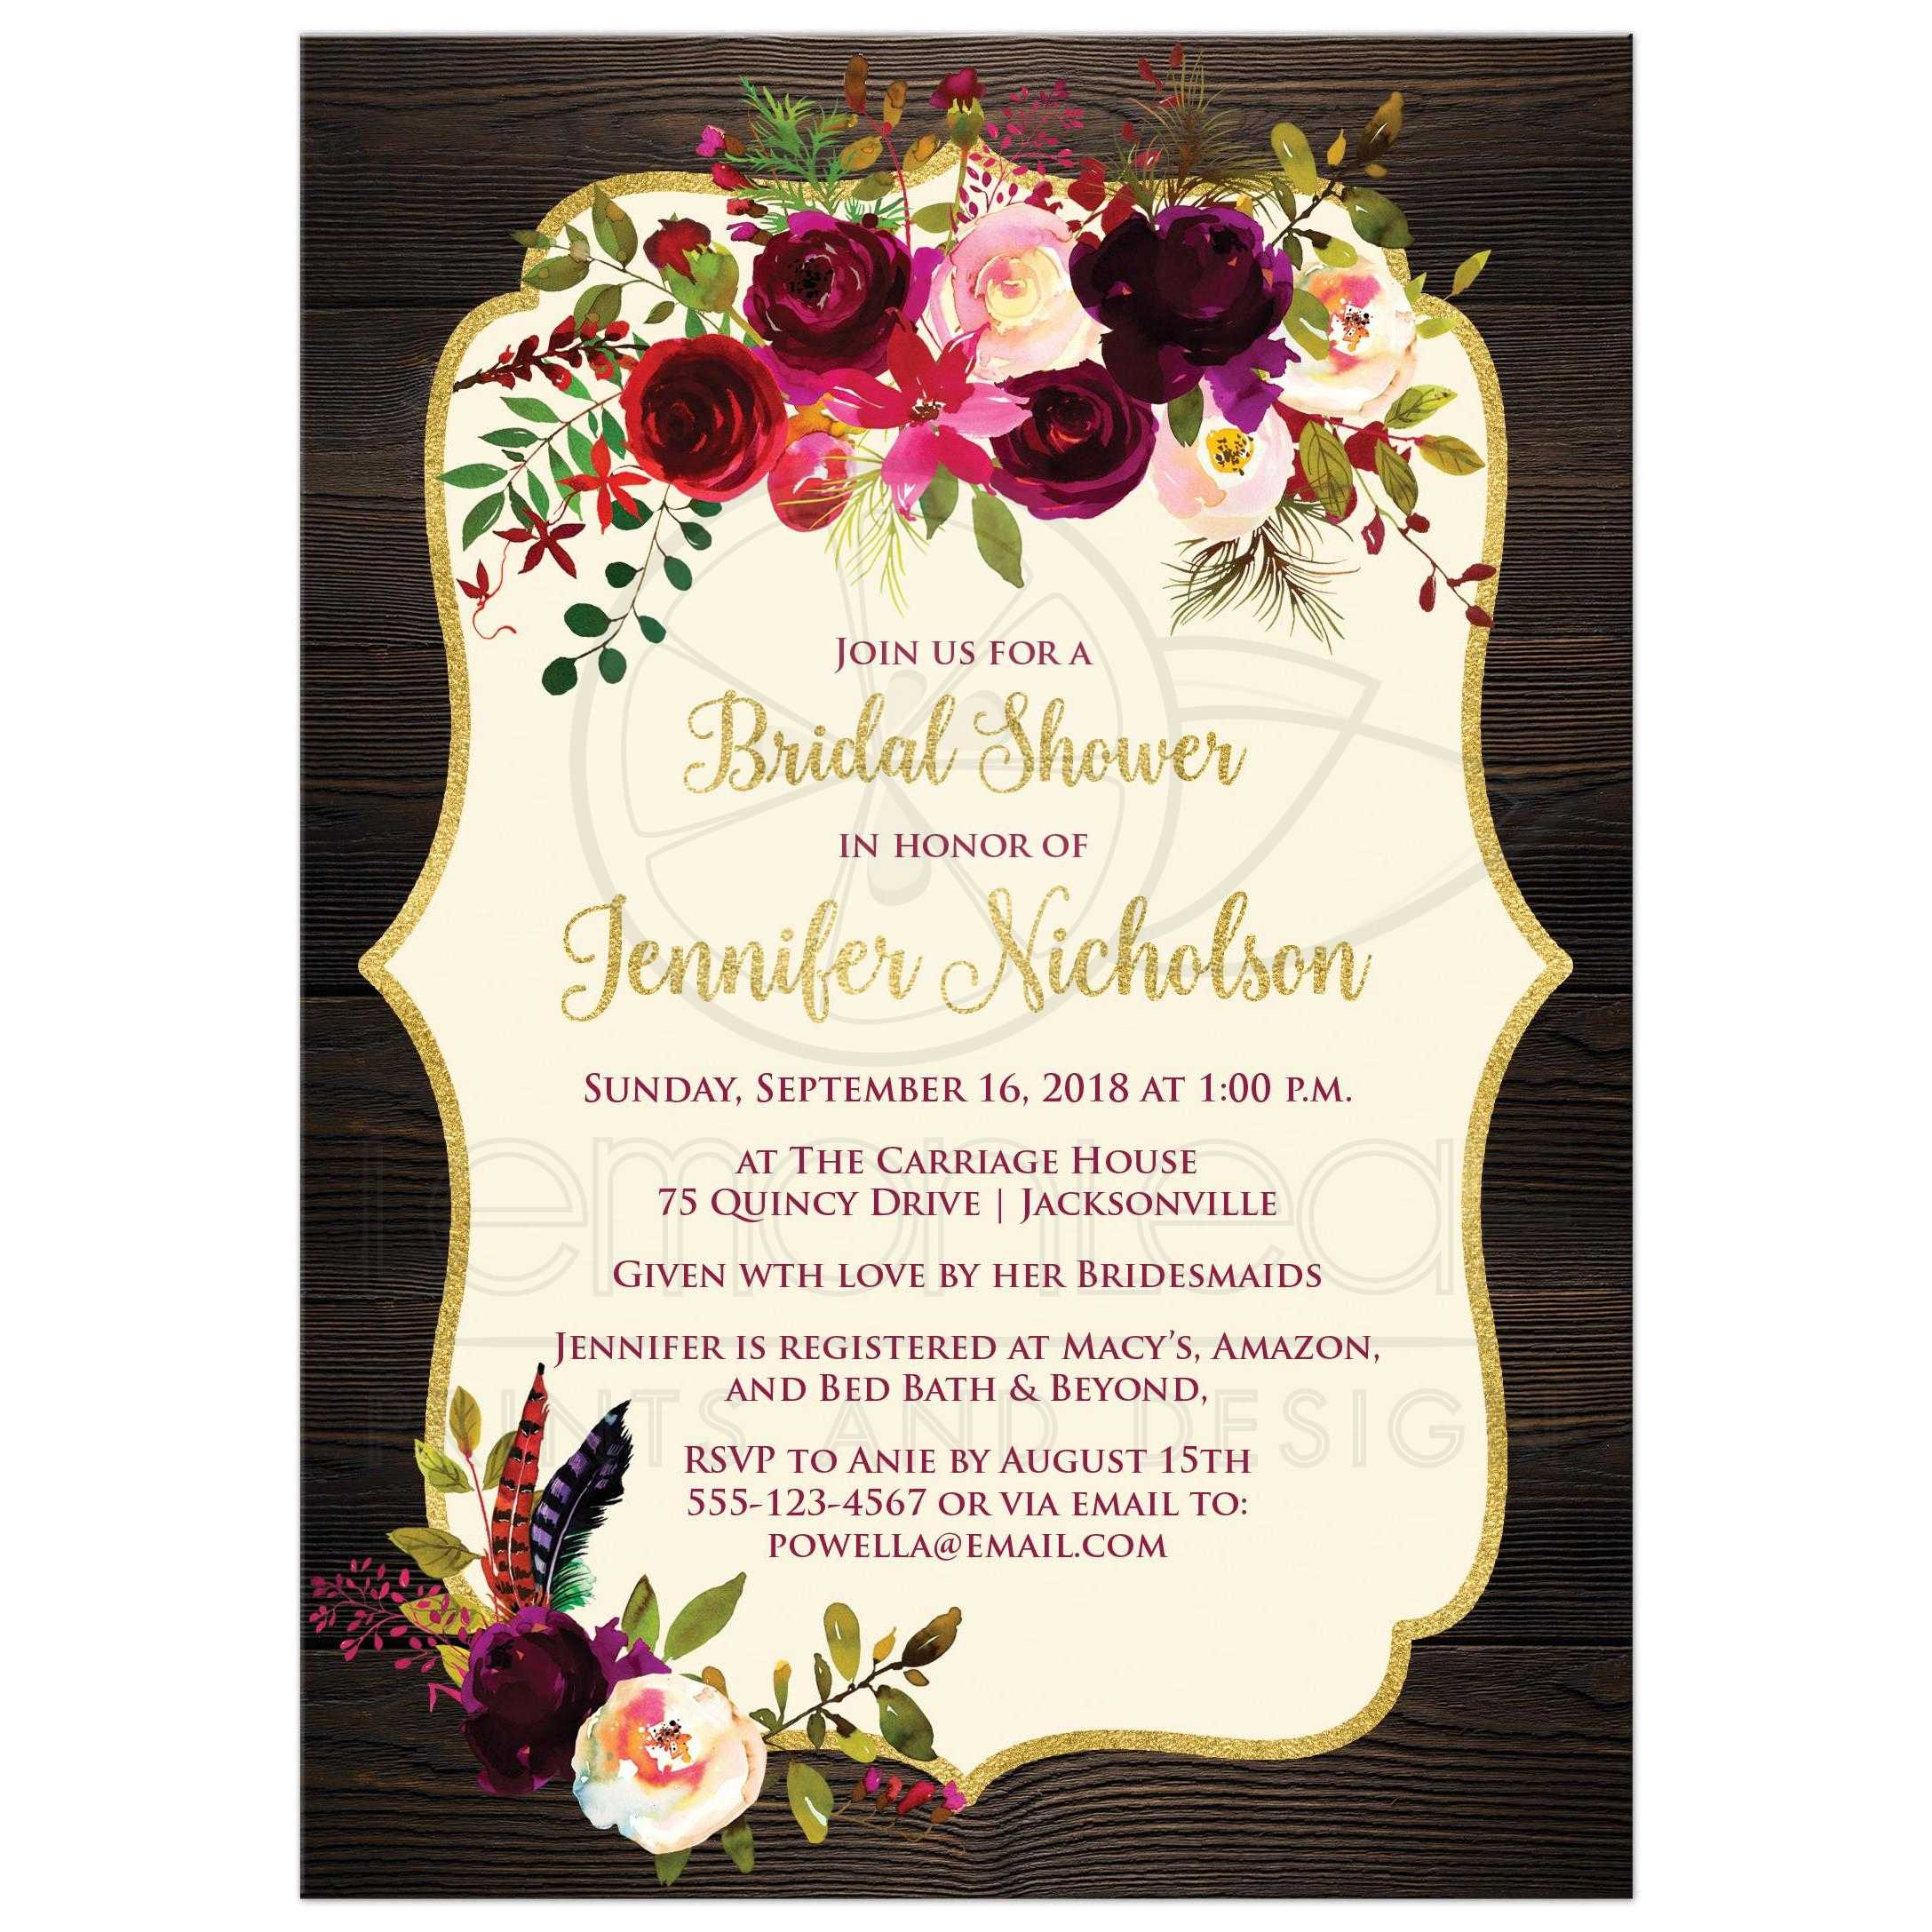 Rustic Boho Elegance Bridal Shower Invitation | Burgundy Watercolor ...